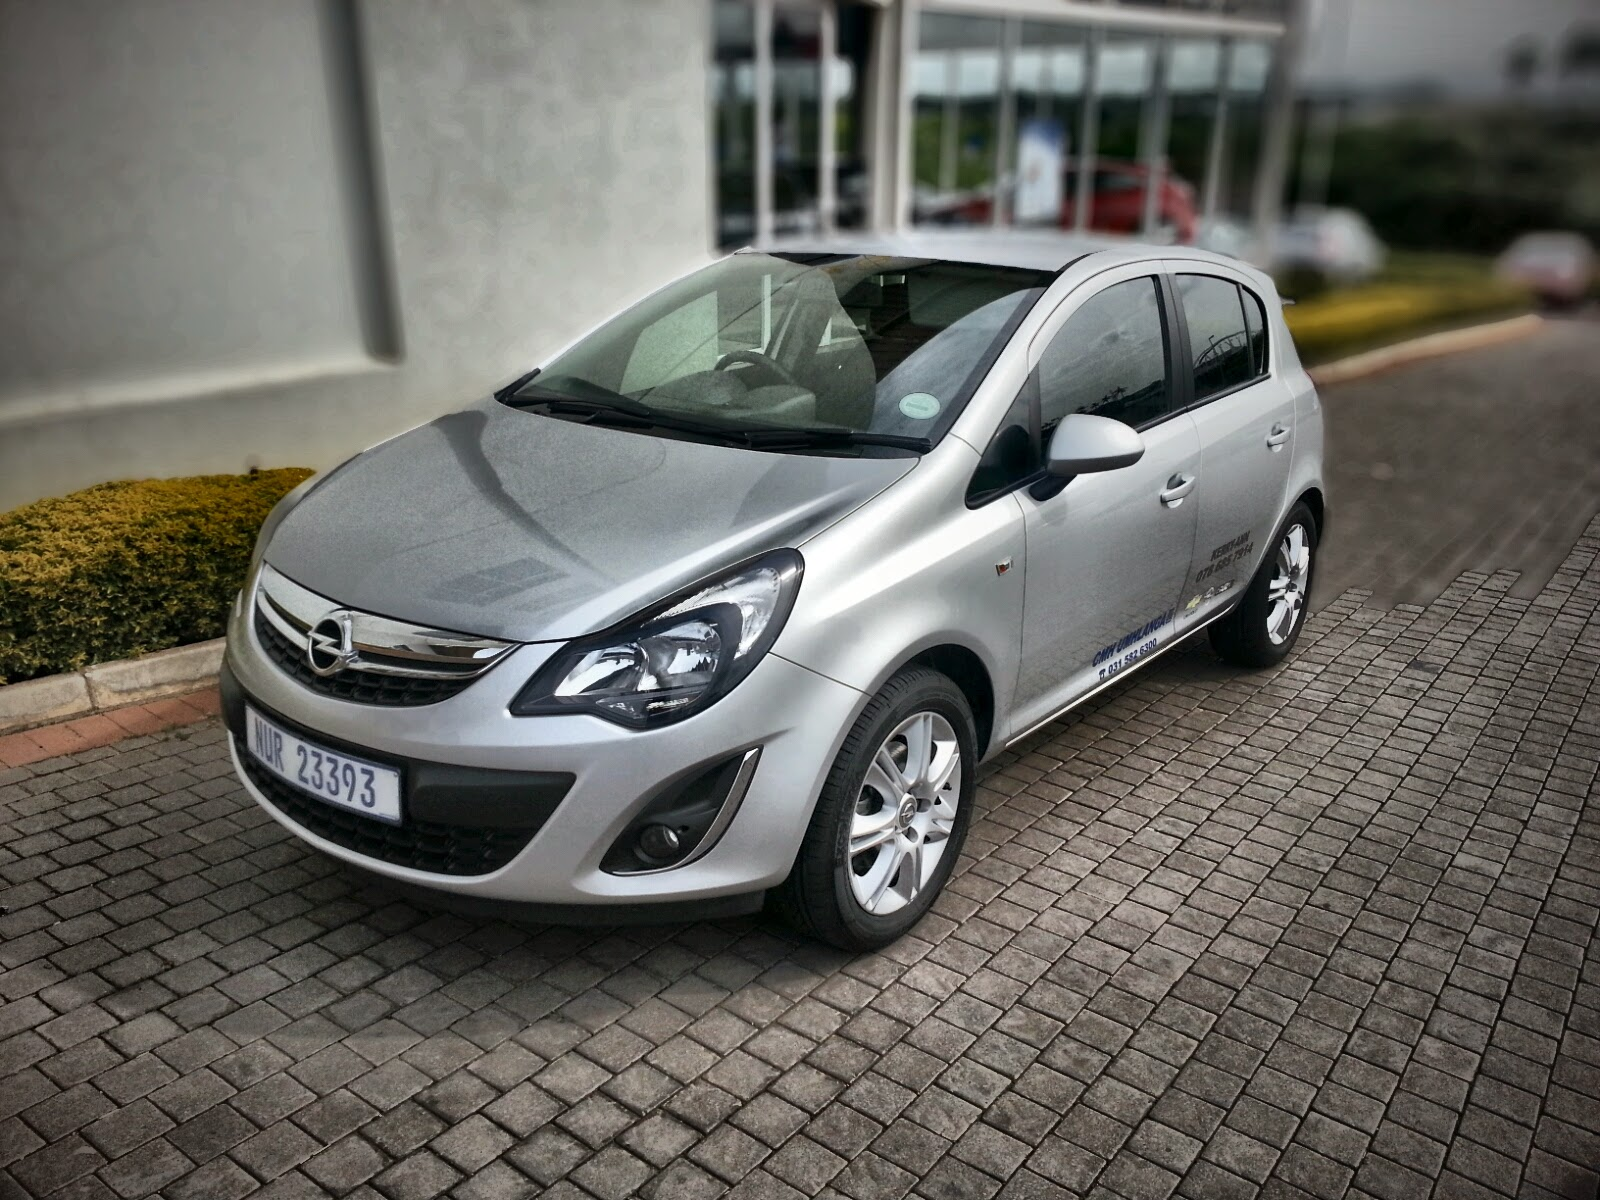 opel corsa 2014 images galleries with a bite. Black Bedroom Furniture Sets. Home Design Ideas